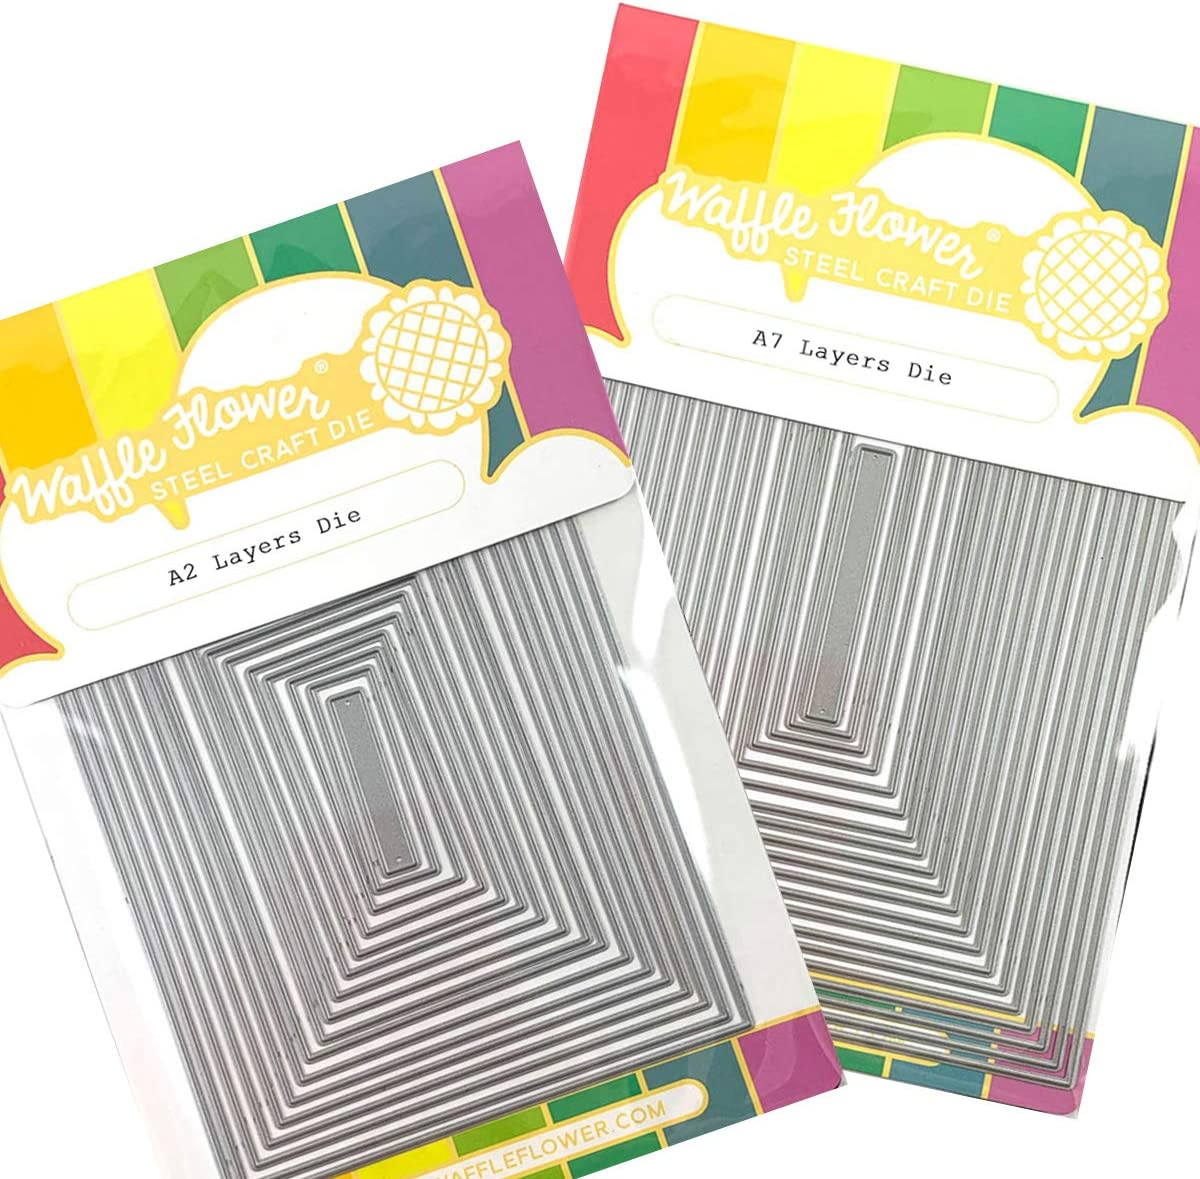 Surprise price Waffle Flower - Nesting Free shipping on posting reviews A2 and A7 Layers Rectan Bundle Die Kit